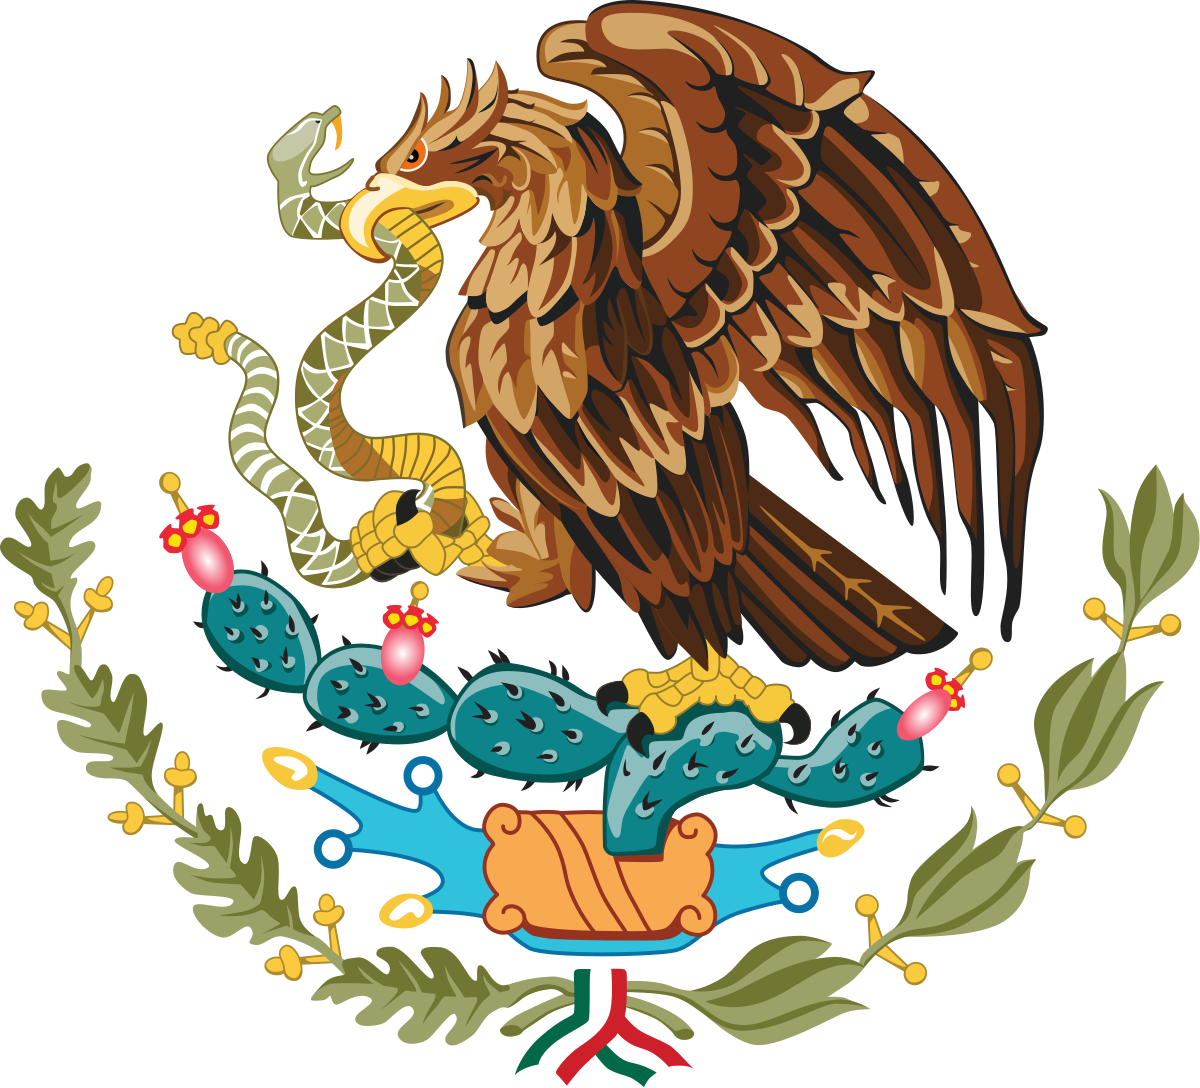 Mexico Fights to Save Economic Progress